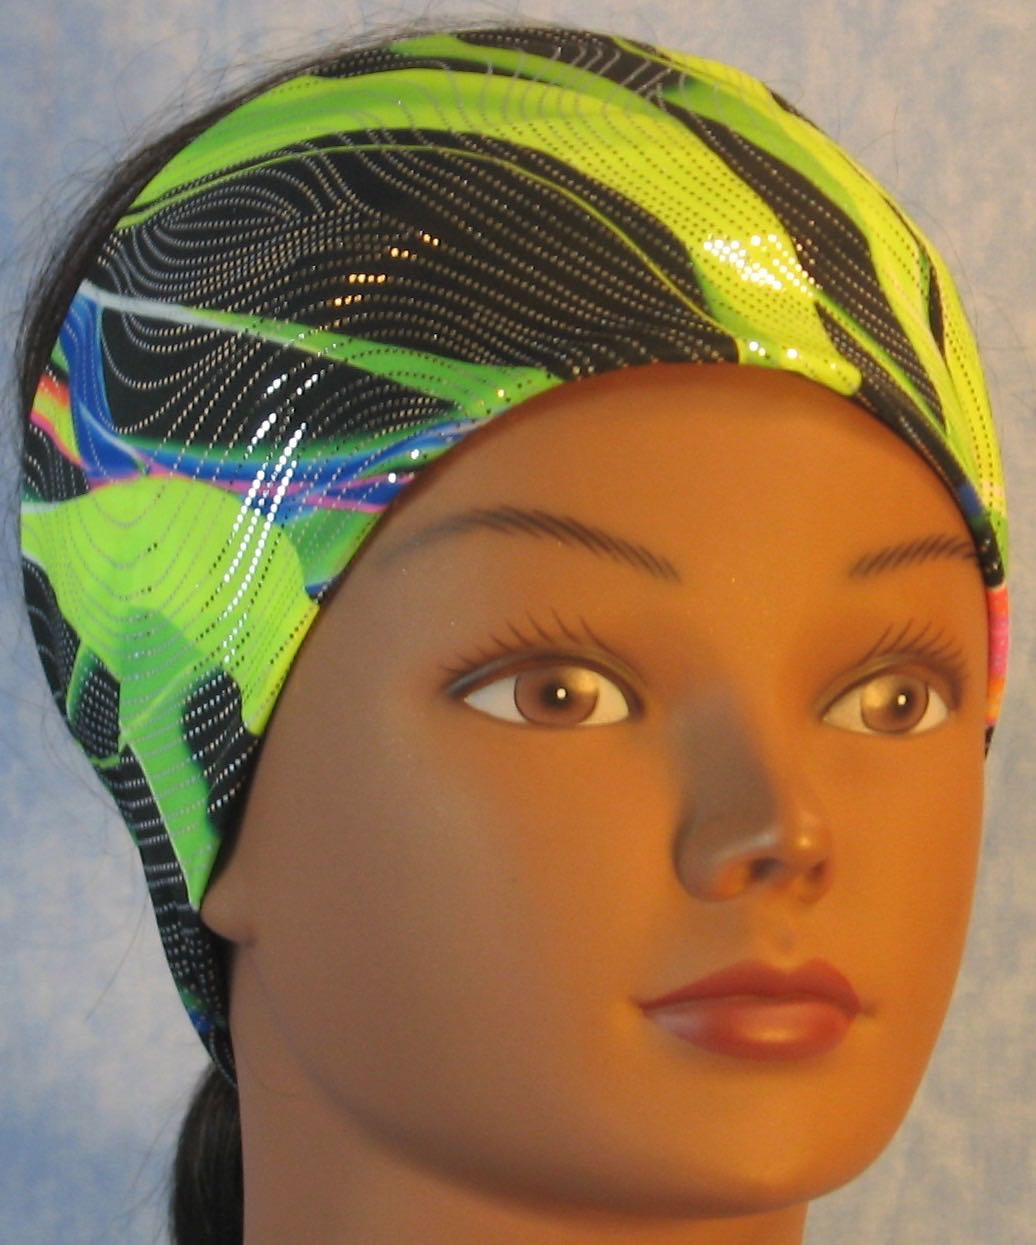 Headband-Green Black Waves With Silver Performance Knit-Adult S